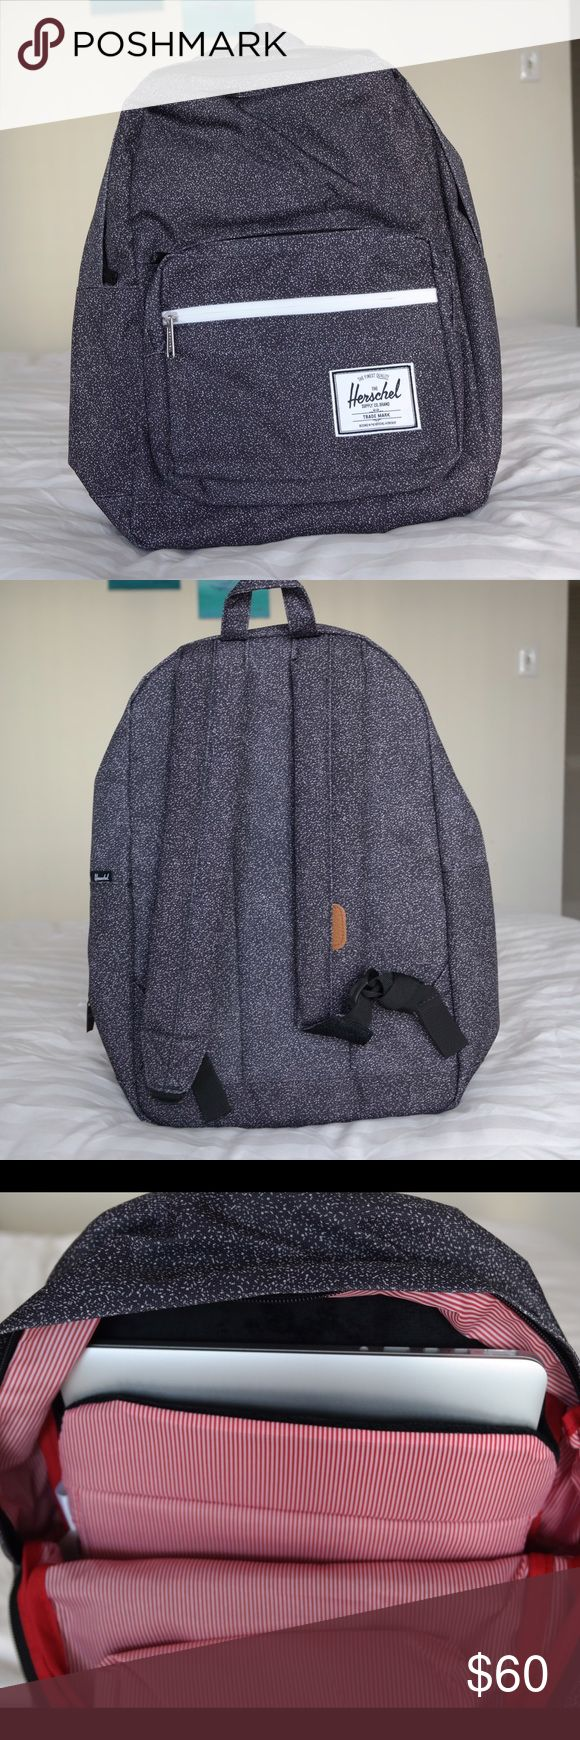 """Herschel Pop Quiz backpack Brand new, never used, tags were removed.  Dark grey with purple specks padded straps. Exterior has 2 front pockets (one with key clip) and fleece lined sunglasses compartment. Interior has padded fleece 15"""" laptop sleeve and internal media pocket with headphone port. Laptop and headphones shown are NOT INCLUDED More pics available.. Herschel Supply Company Bags Backpacks"""